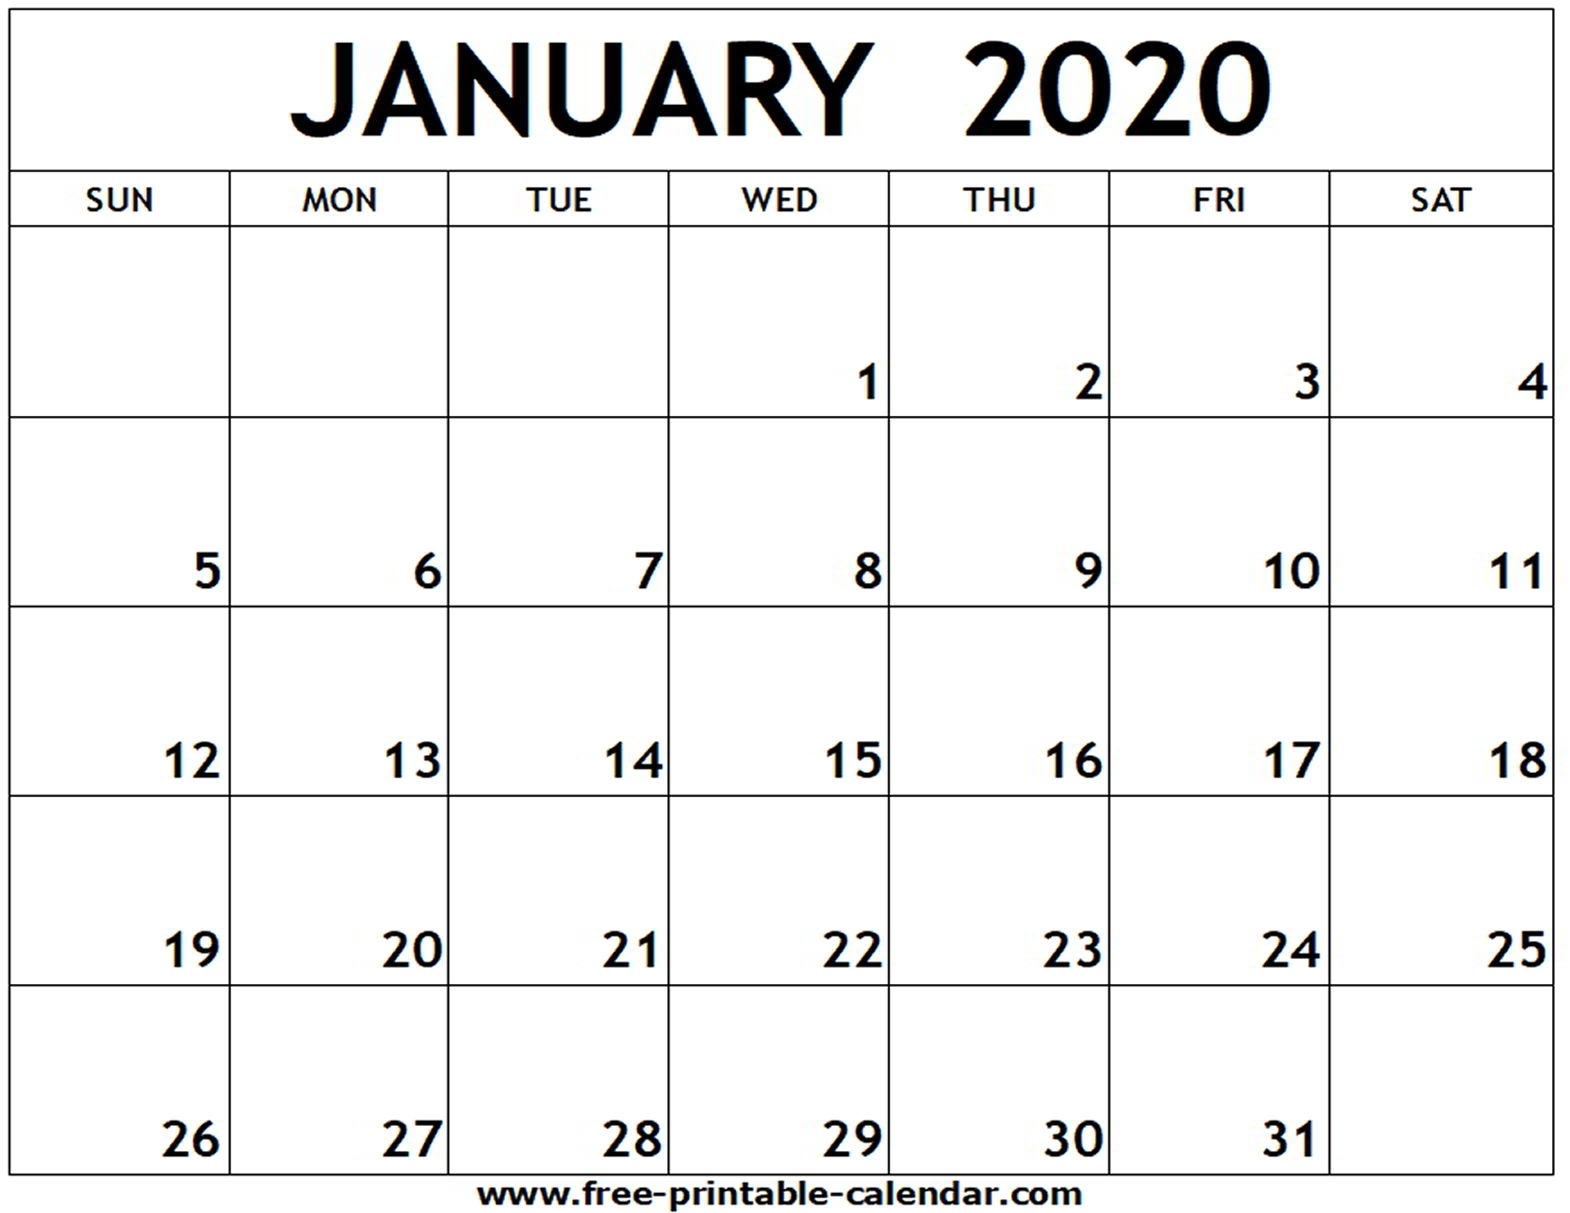 January 2020 Printable Calendar - Free-Printable-Calendar inside Blank Calander 2020 Fill In